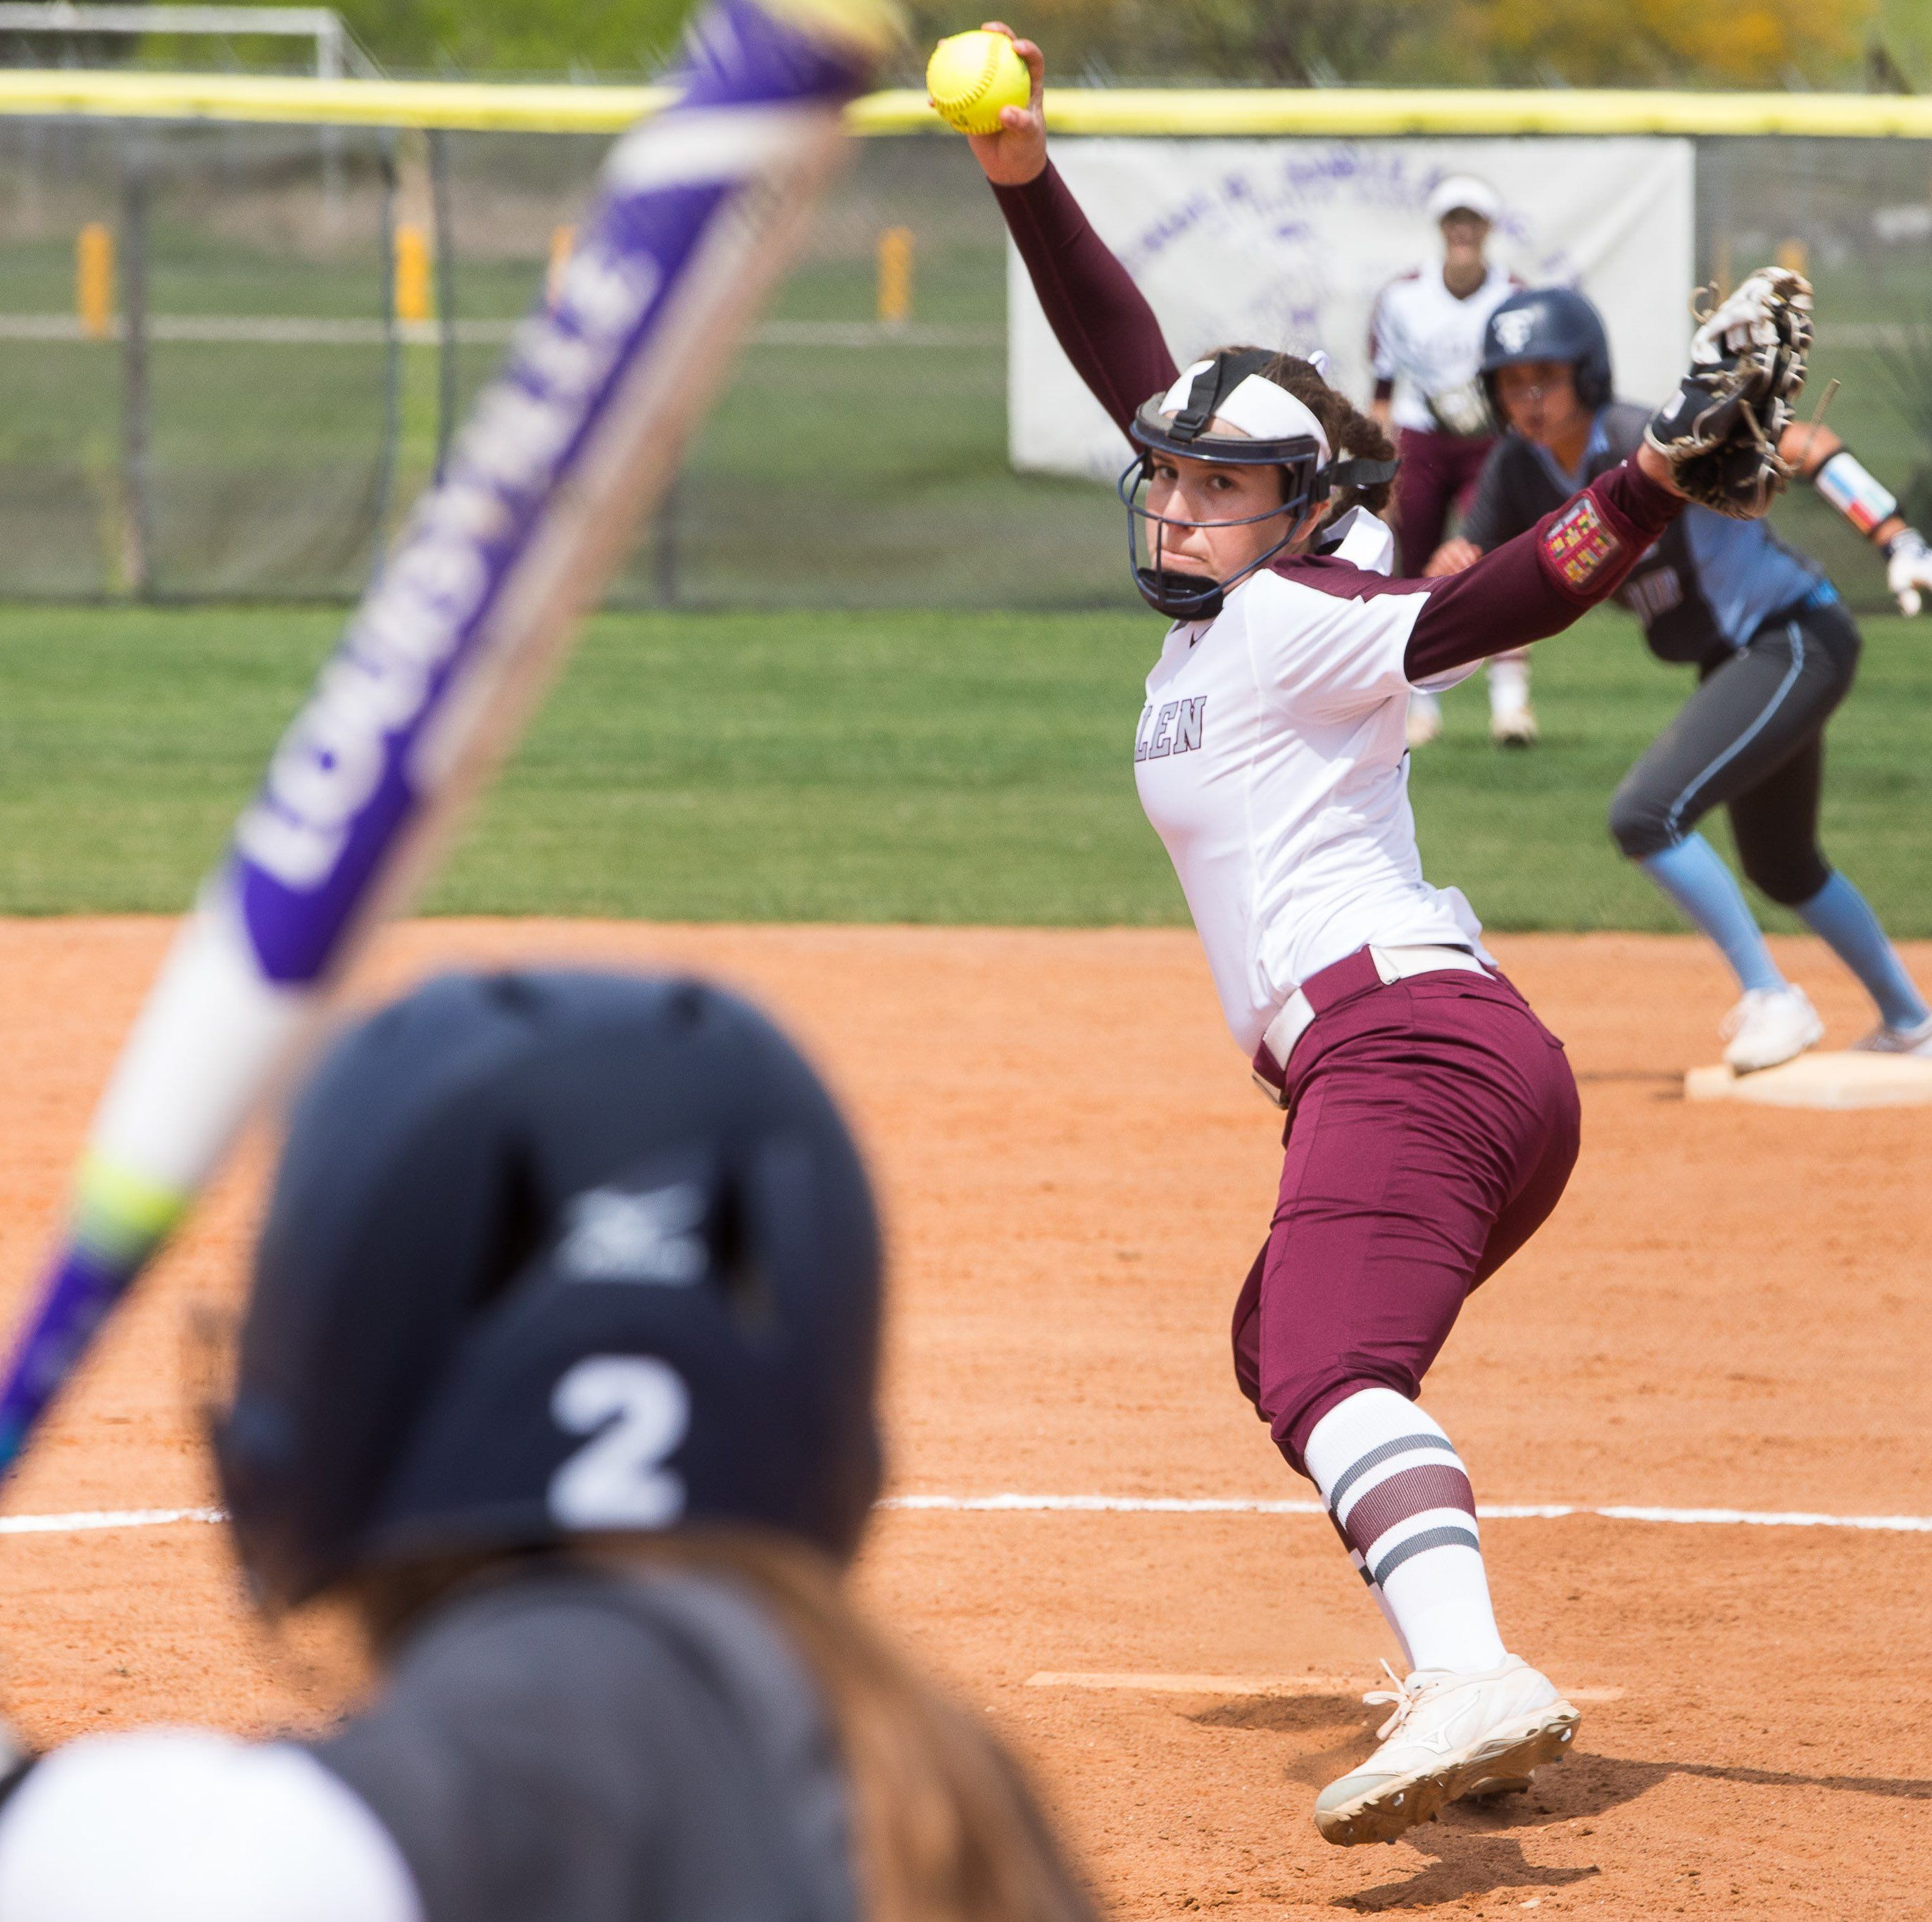 Calallen's Lizette Del Angel named Caller-Times High School Athlete of the Week